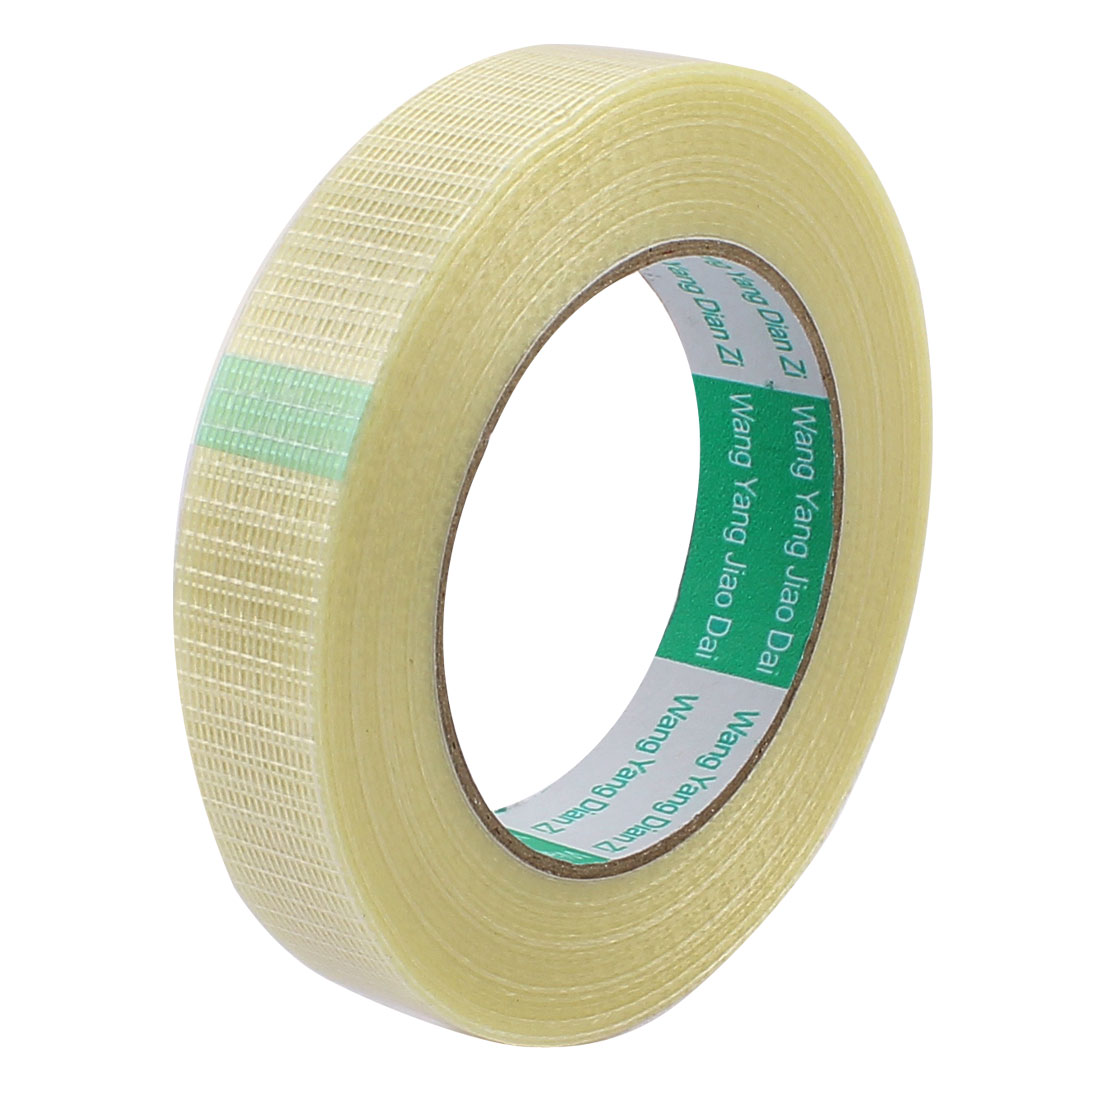 22mm Height 50M Length Long Adhesive Insulating Grid Glass Fiber Tape Roll